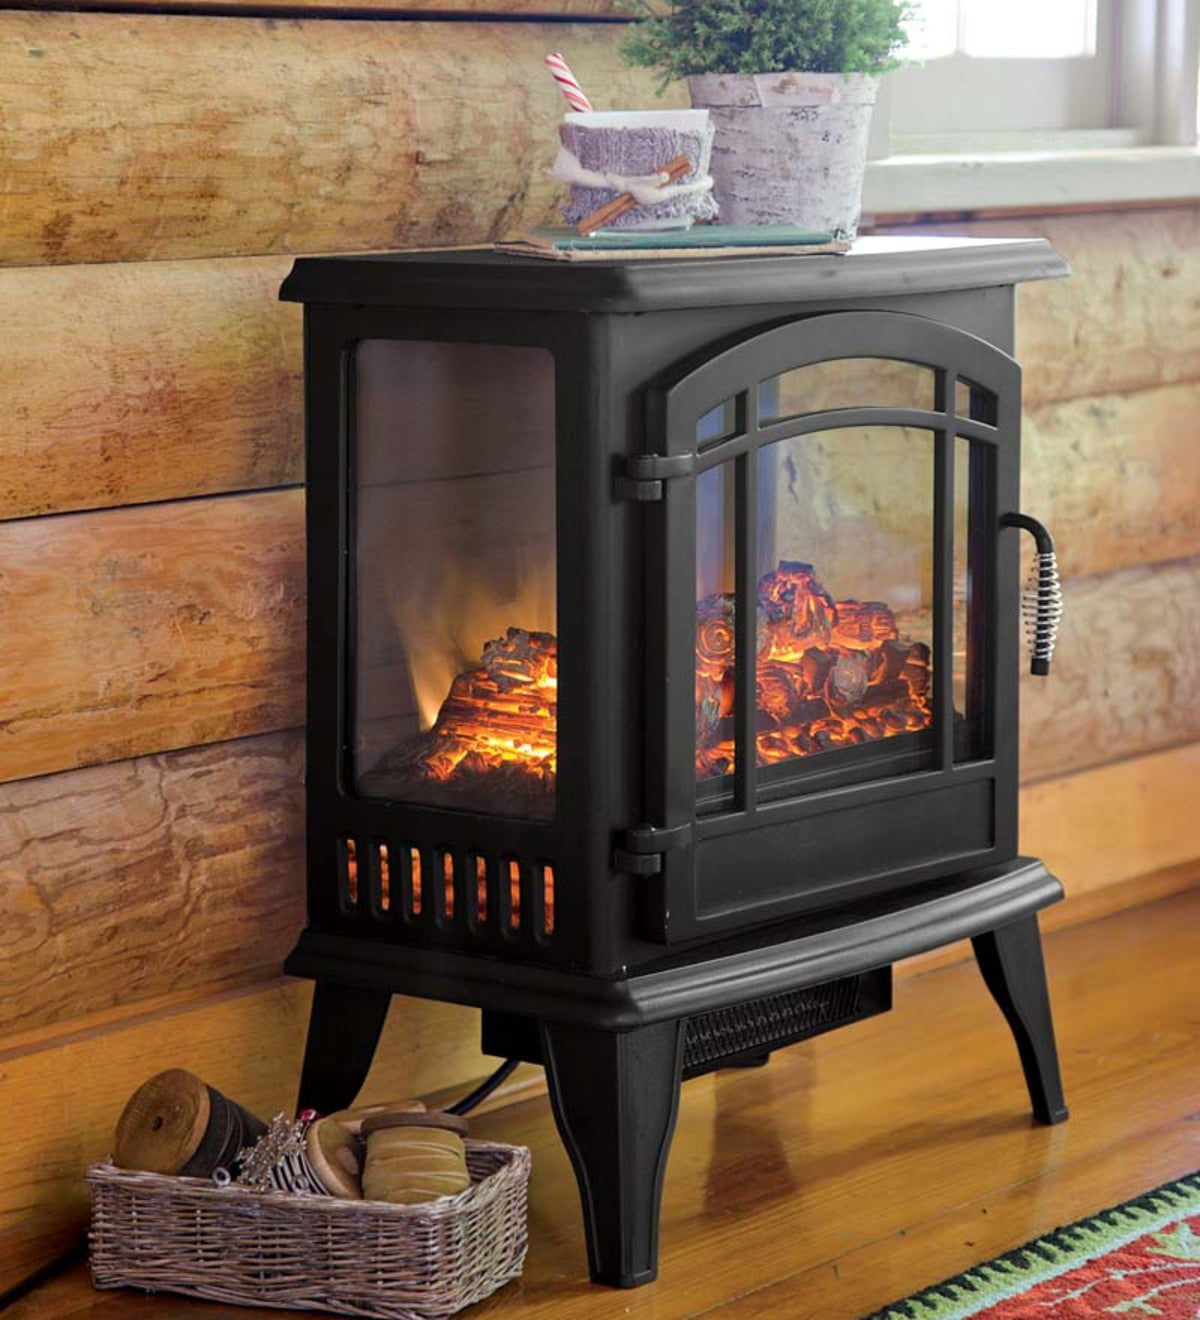 Panoramic Quartz Infrared Stove Heater Black Plowhearth